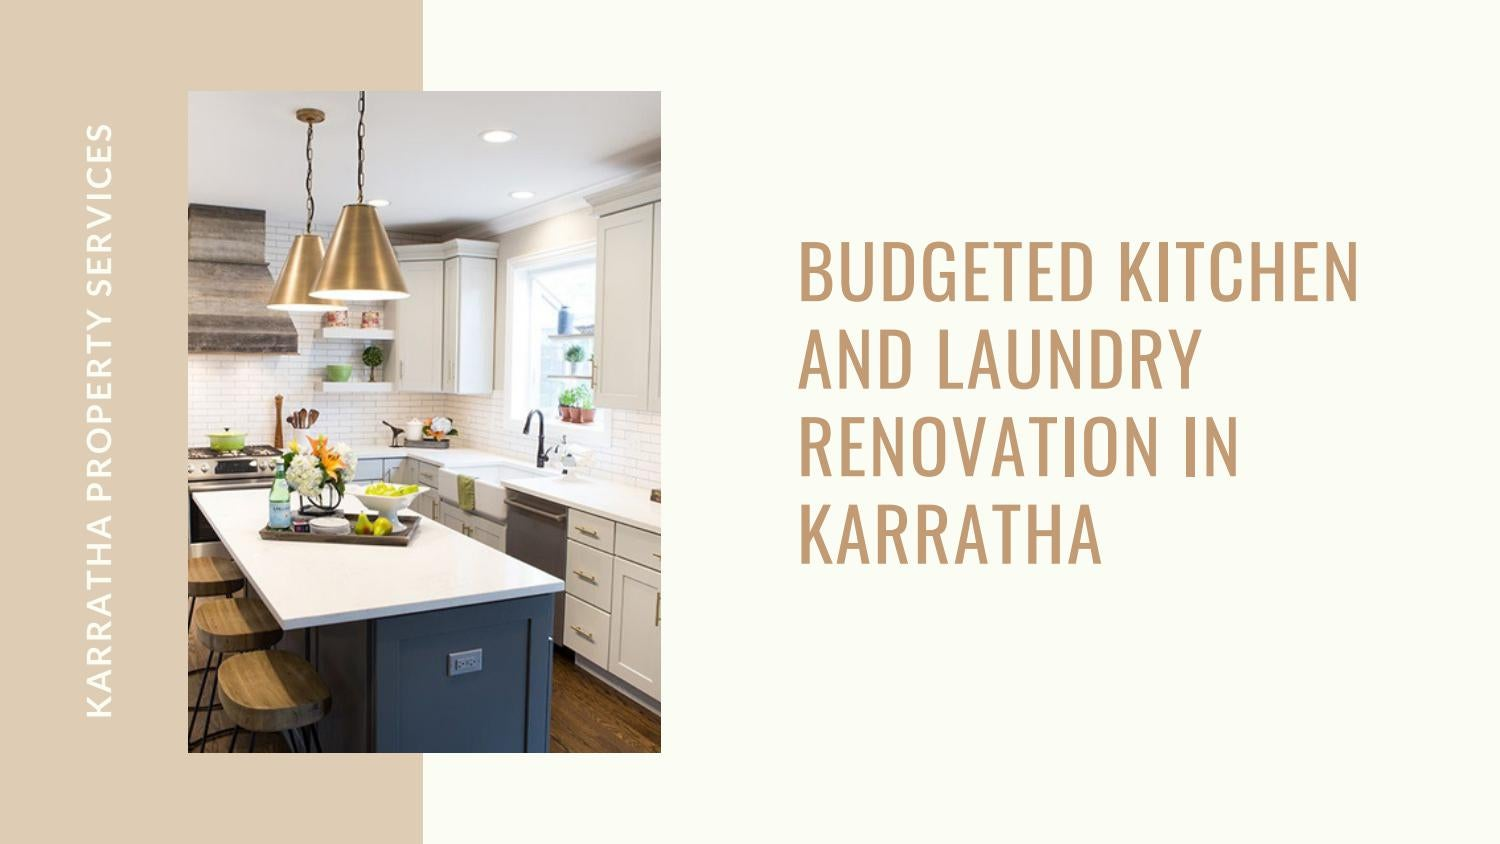 Budgeted Kitchen and Laundry Renovation in Karratha